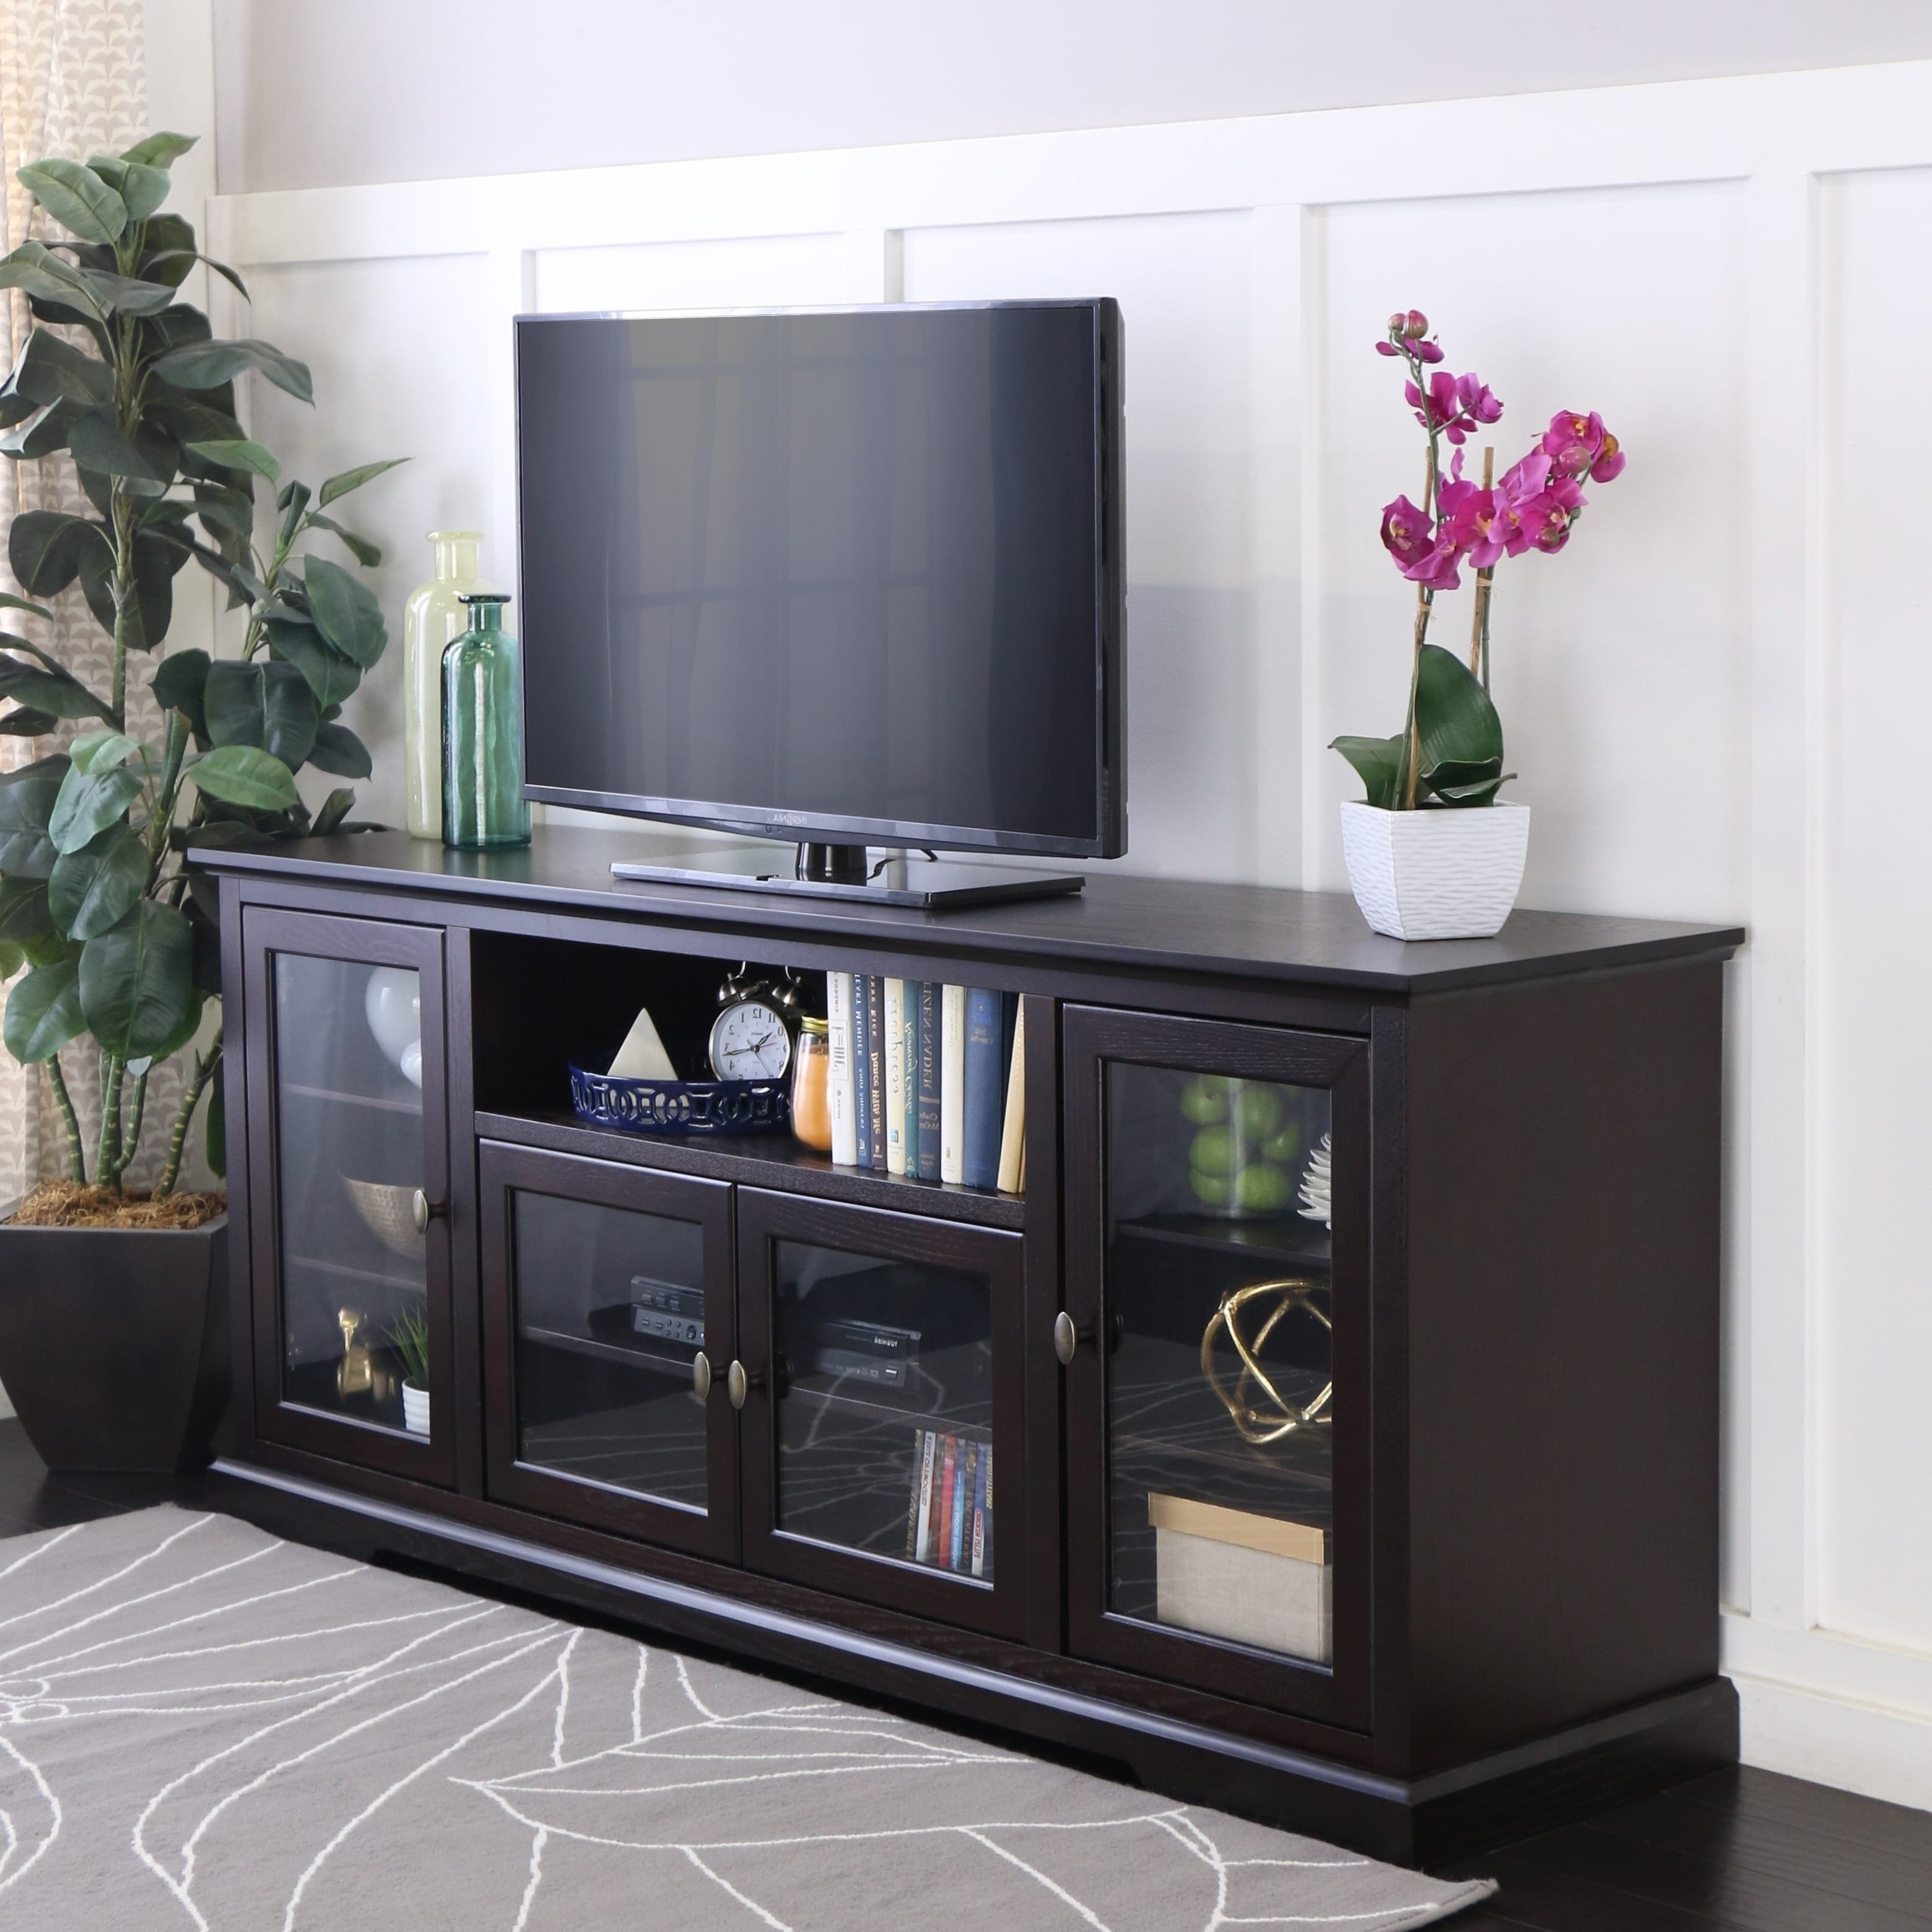 """Tv Stands For 70 Flat Screen For Well Known Shop 70"""" Highboy Tv Stand Console – Espresso – 70 X 16 X 30h – On (View 20 of 20)"""